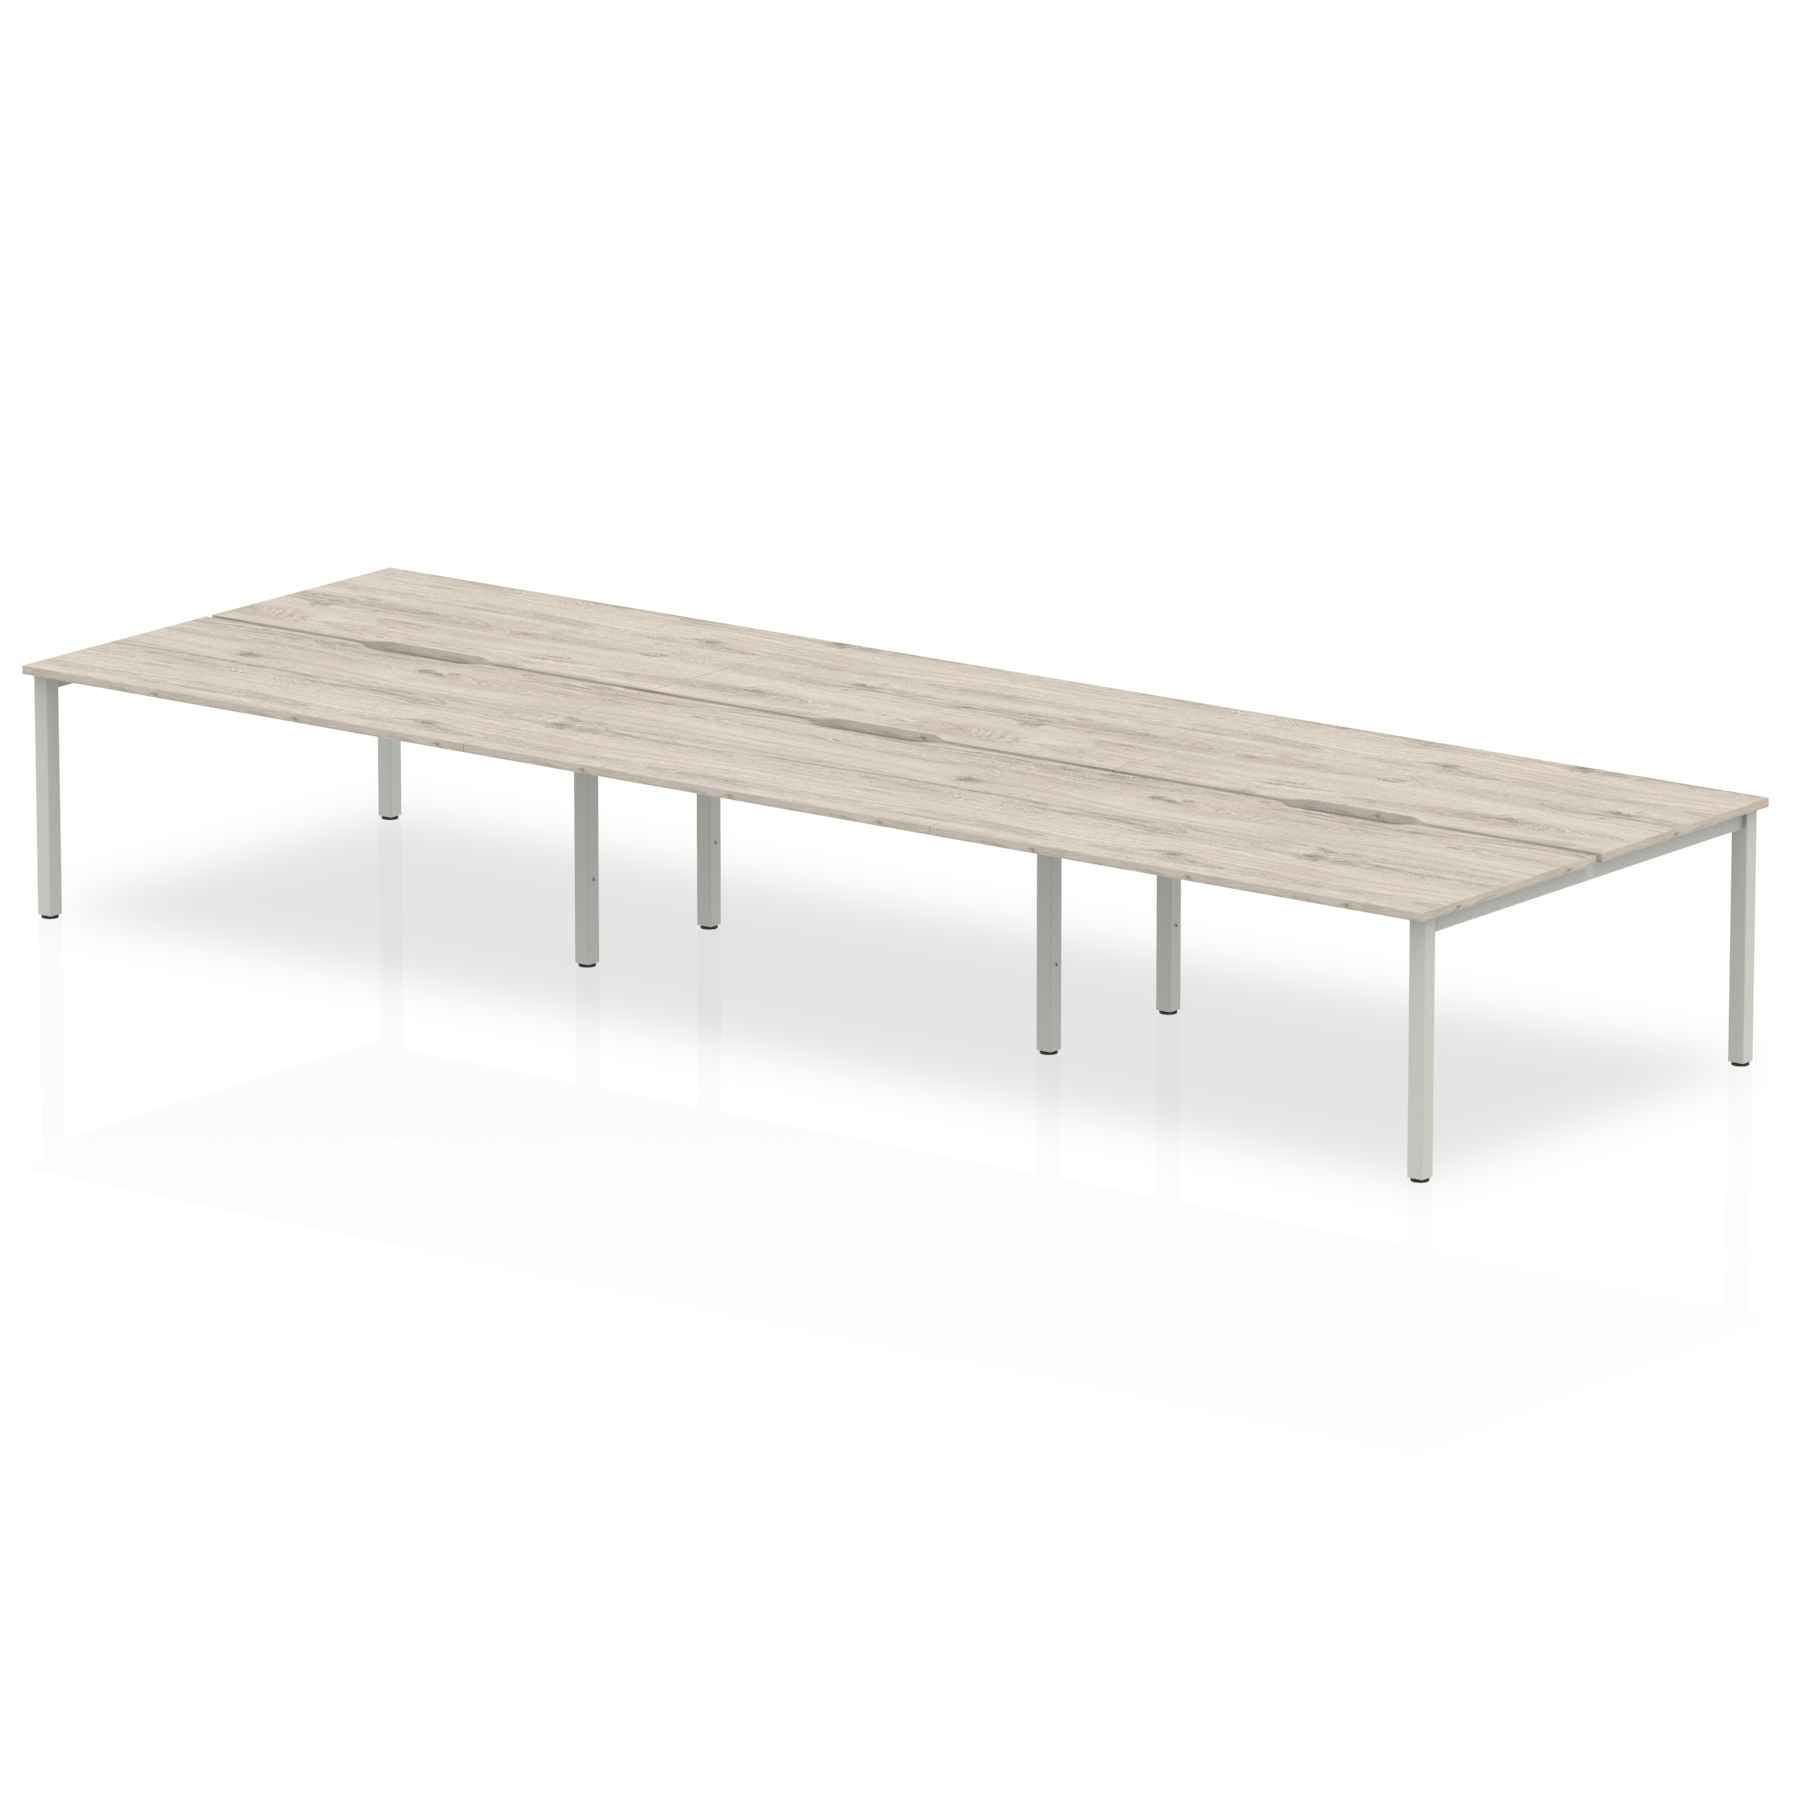 Desks Trexus Bench Desk 6 Person Back to Back Configuration Silver Leg 3600x1600mm Grey Oak Ref BE753